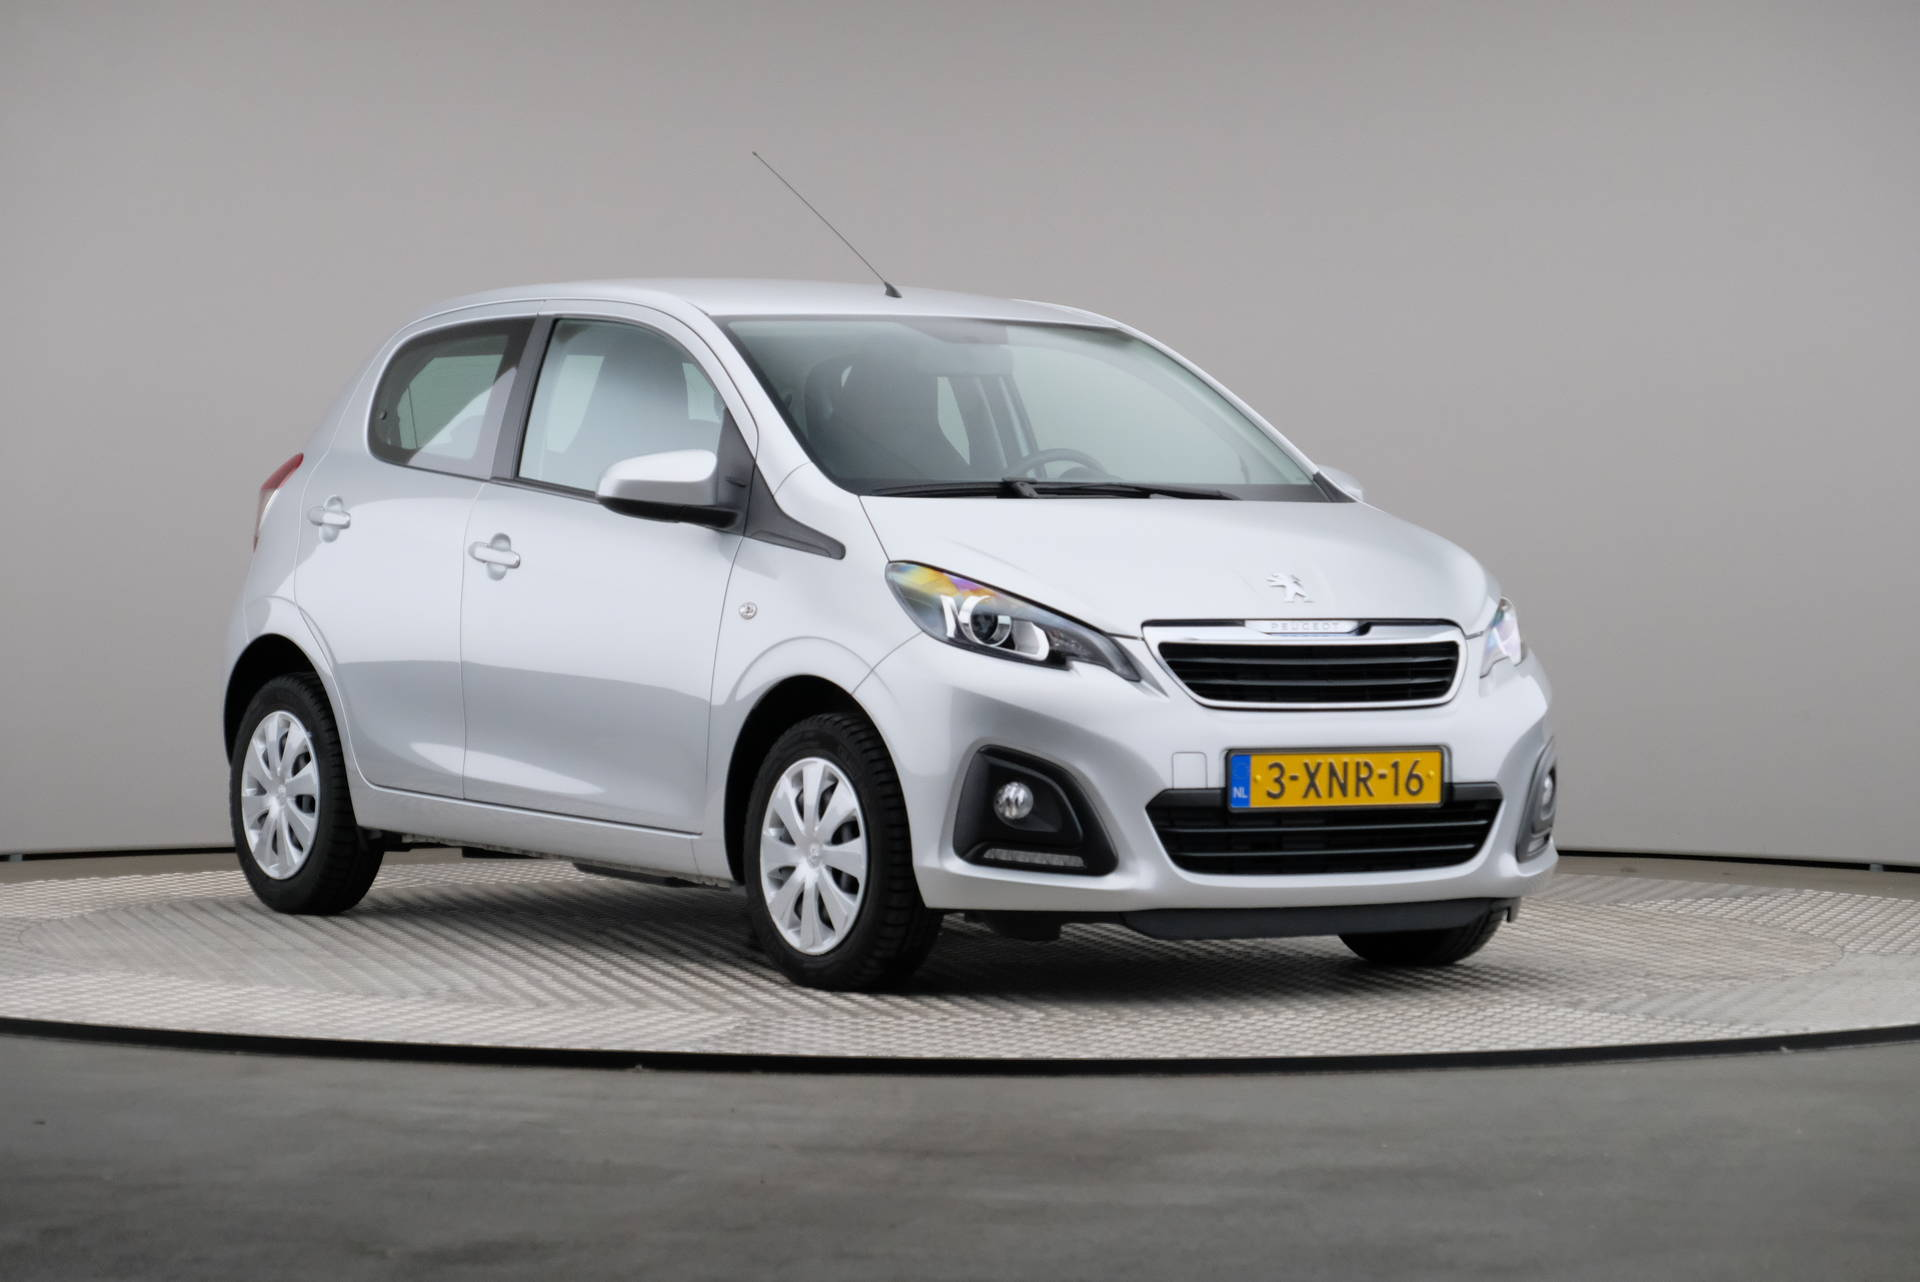 Peugeot 108 1.0 e-VTi Blue Lease, Airconditioning, 360-image29